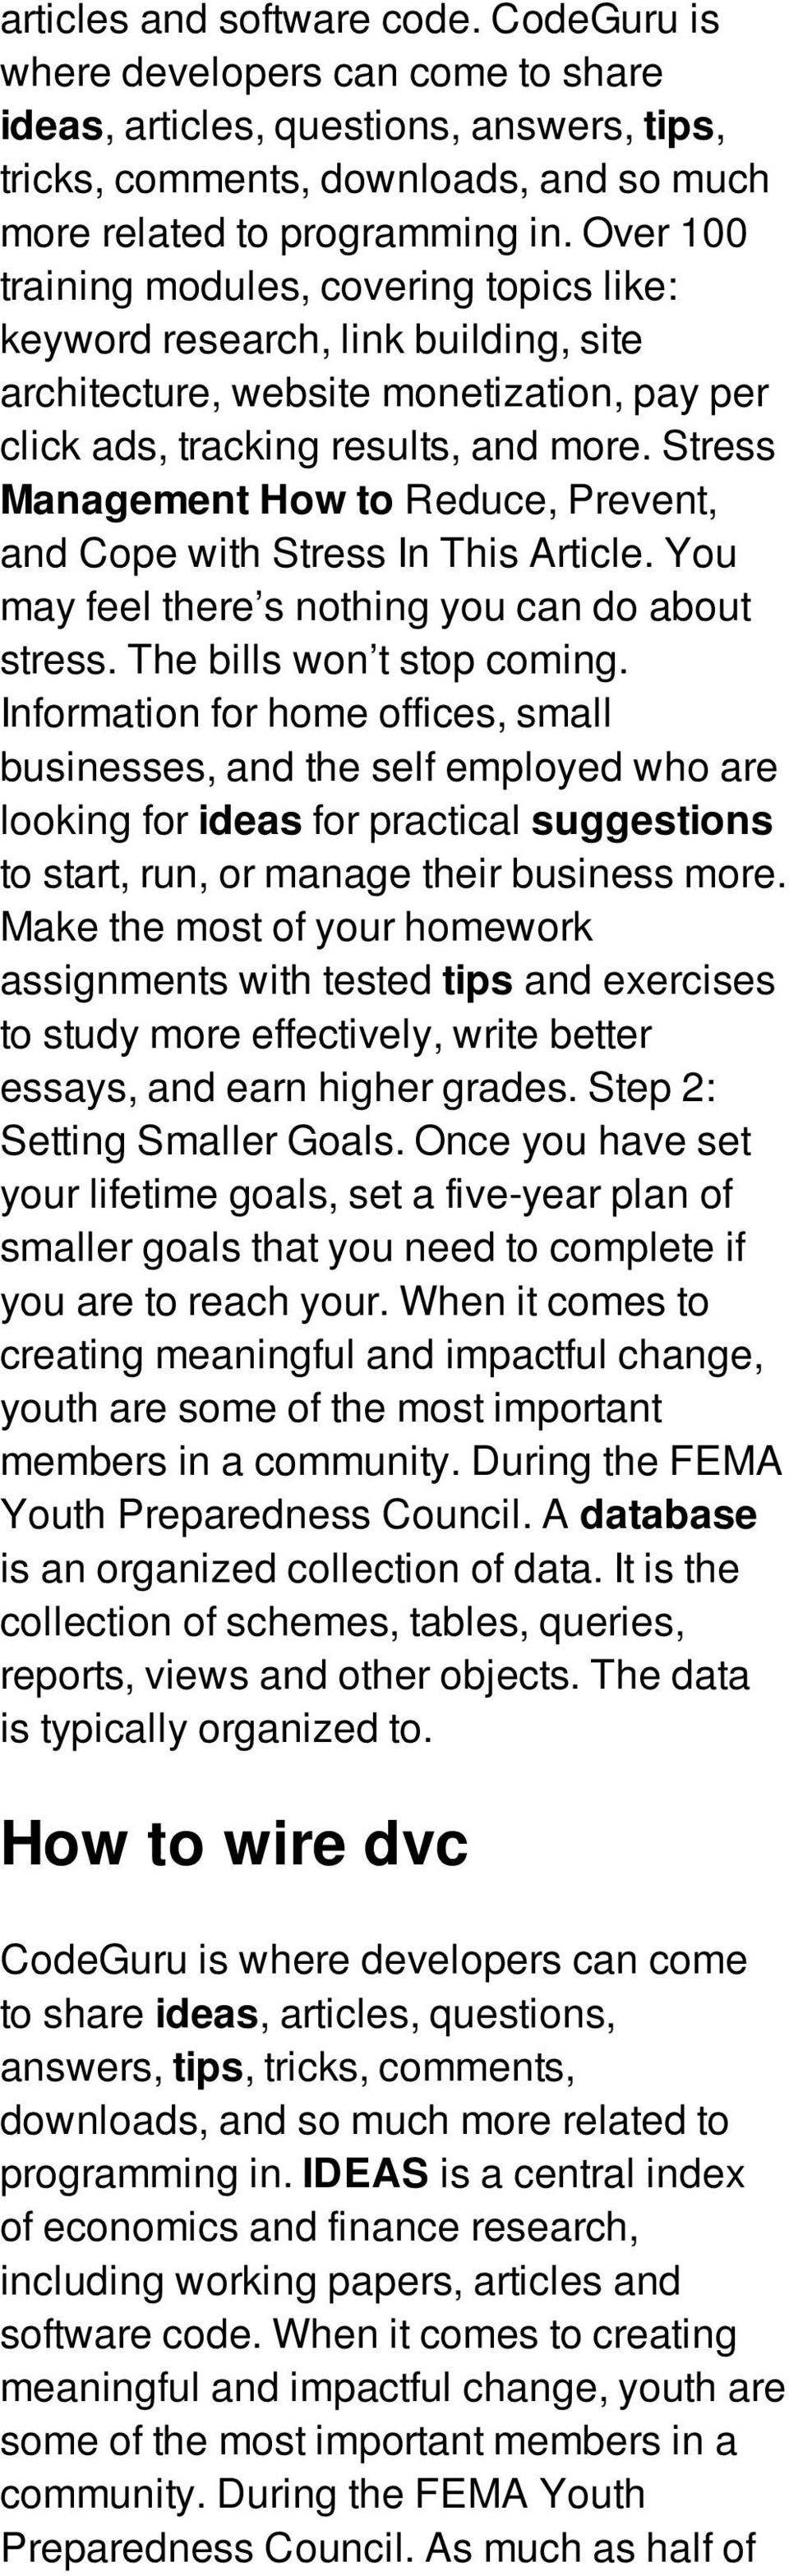 Stress Management How to Reduce, Prevent, and Cope with Stress In This Article. You may feel there s nothing you can do about stress. The bills won t stop coming.